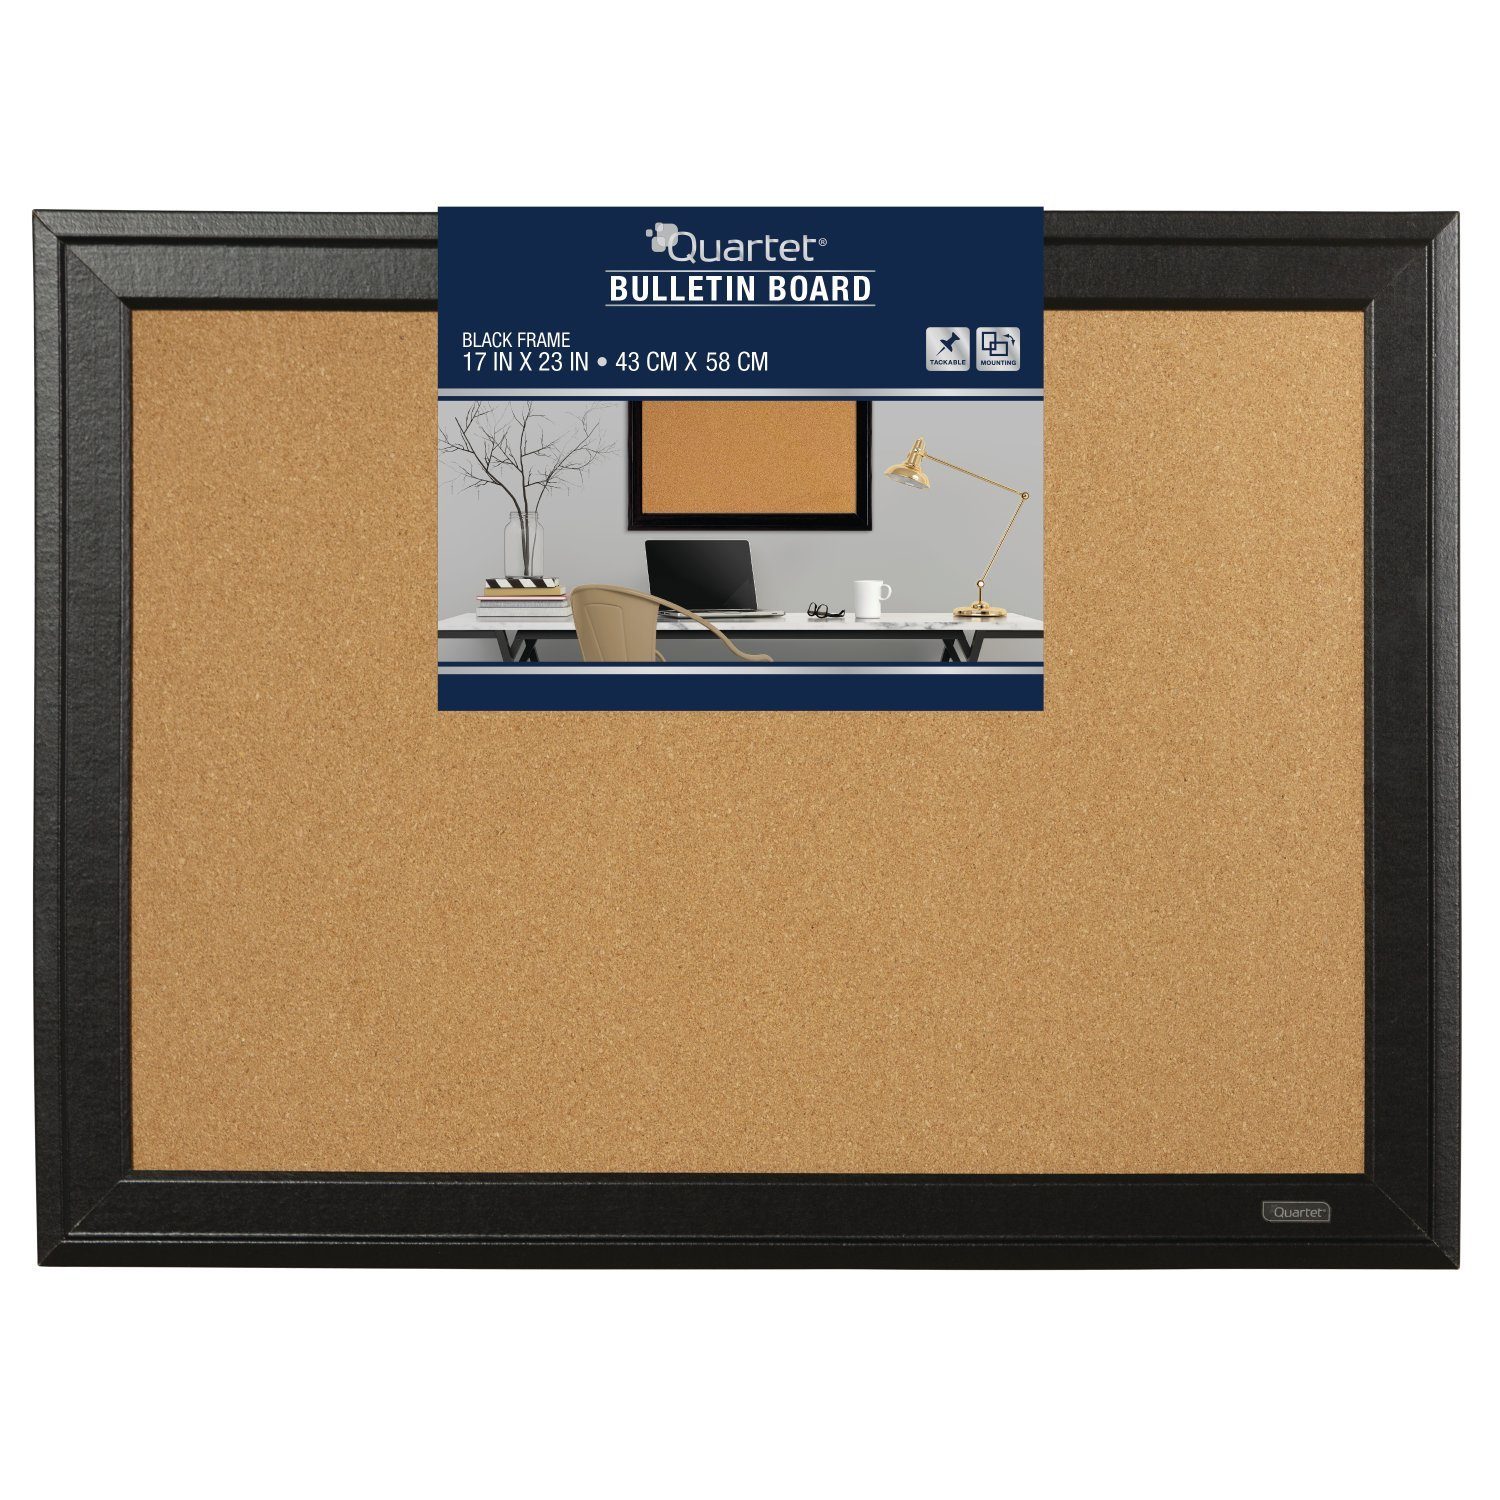 Amazon quartet cork bulletin board 11 x 17 inches home amazon quartet cork bulletin board 11 x 17 inches home dcor corkboard black frame 79279 corkboard office products altavistaventures Choice Image